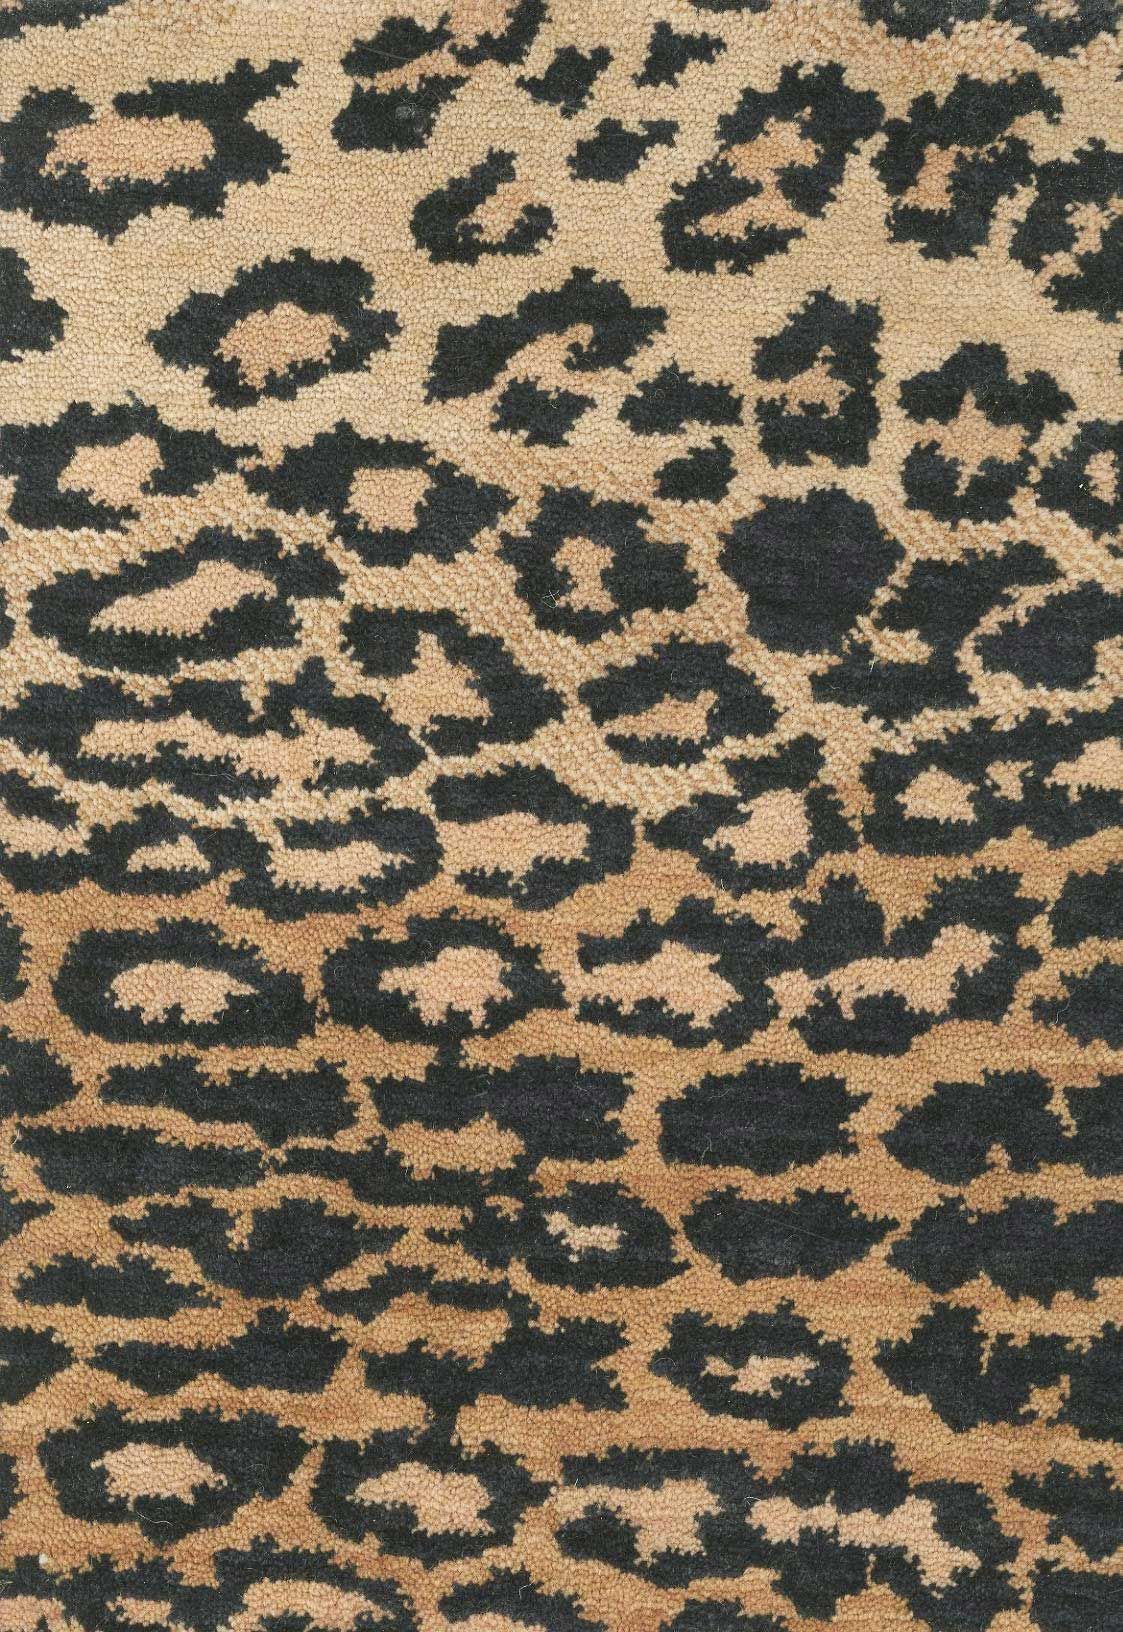 Animal Print Carpets Gallery Leopard Carpet 100